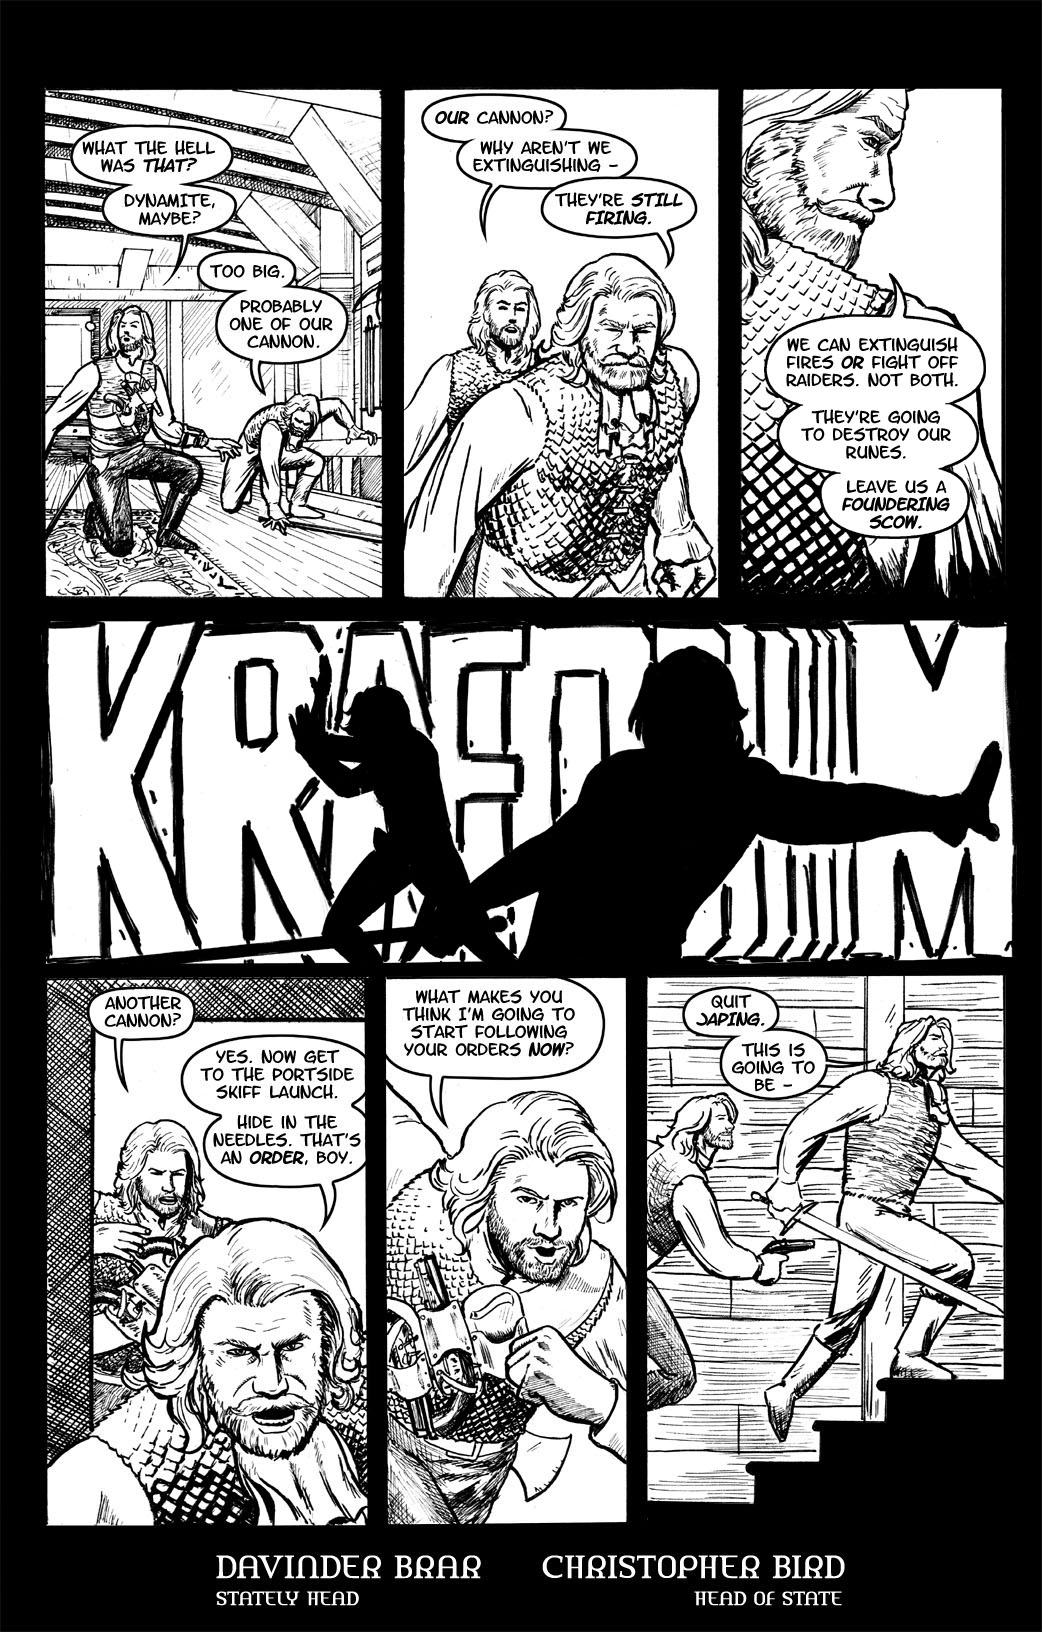 Book 1, page 12